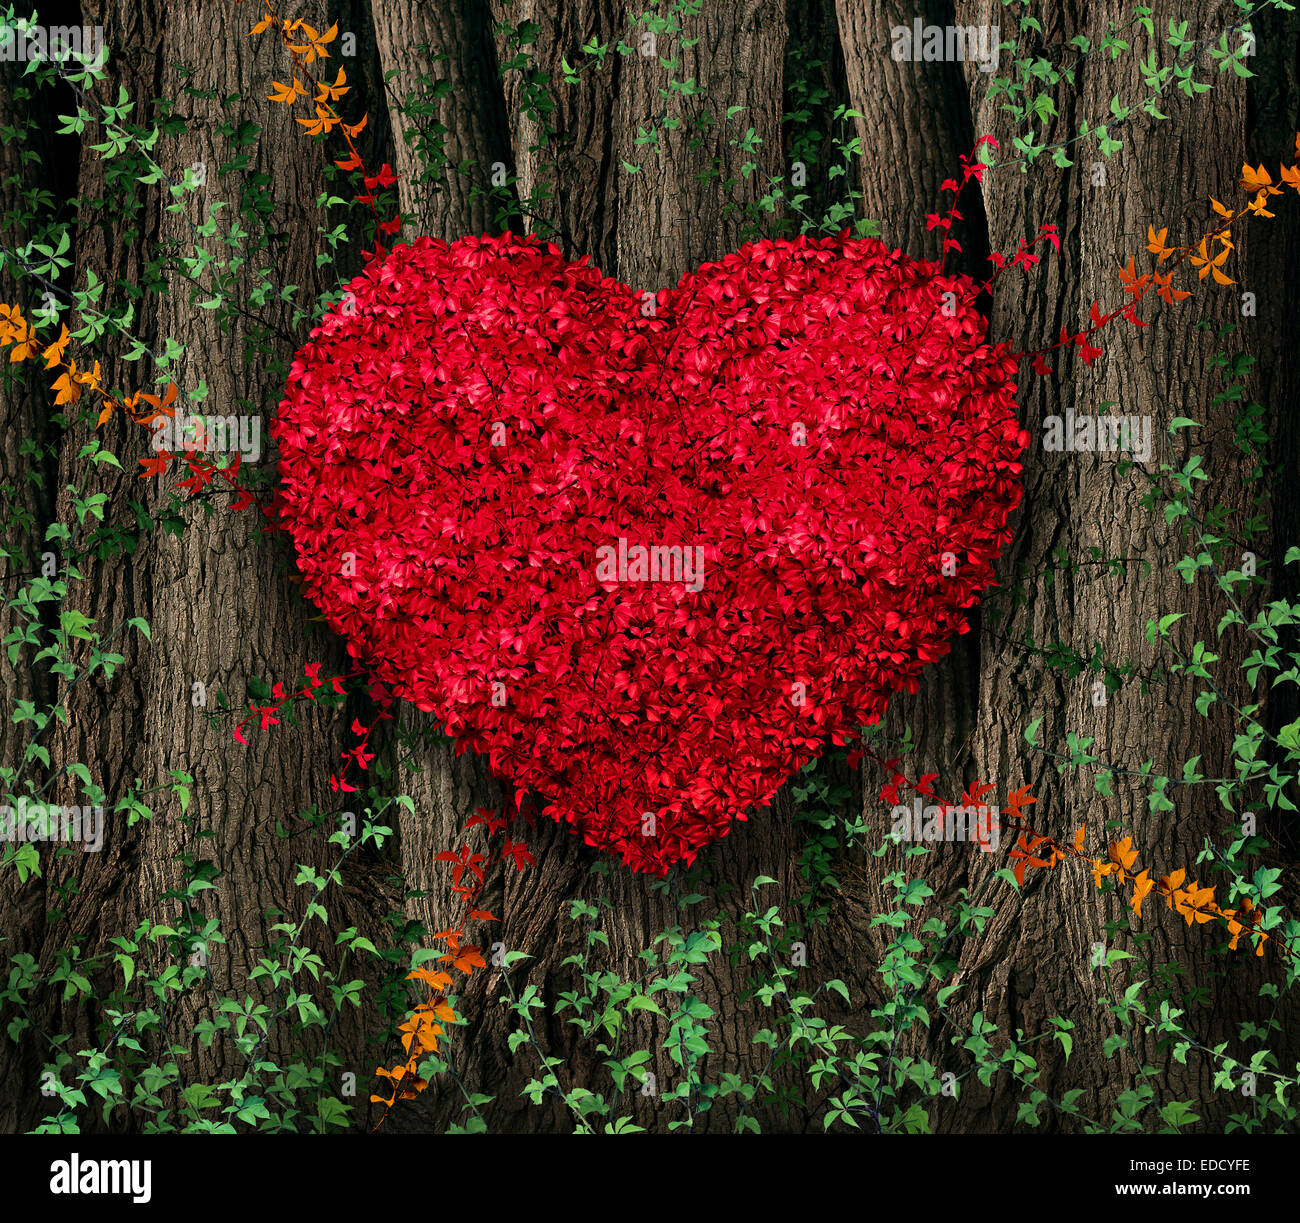 Valentines day red leaf vine growing in a natural forest of big trees shaped in a heart shape as a happy celebration - Stock Image